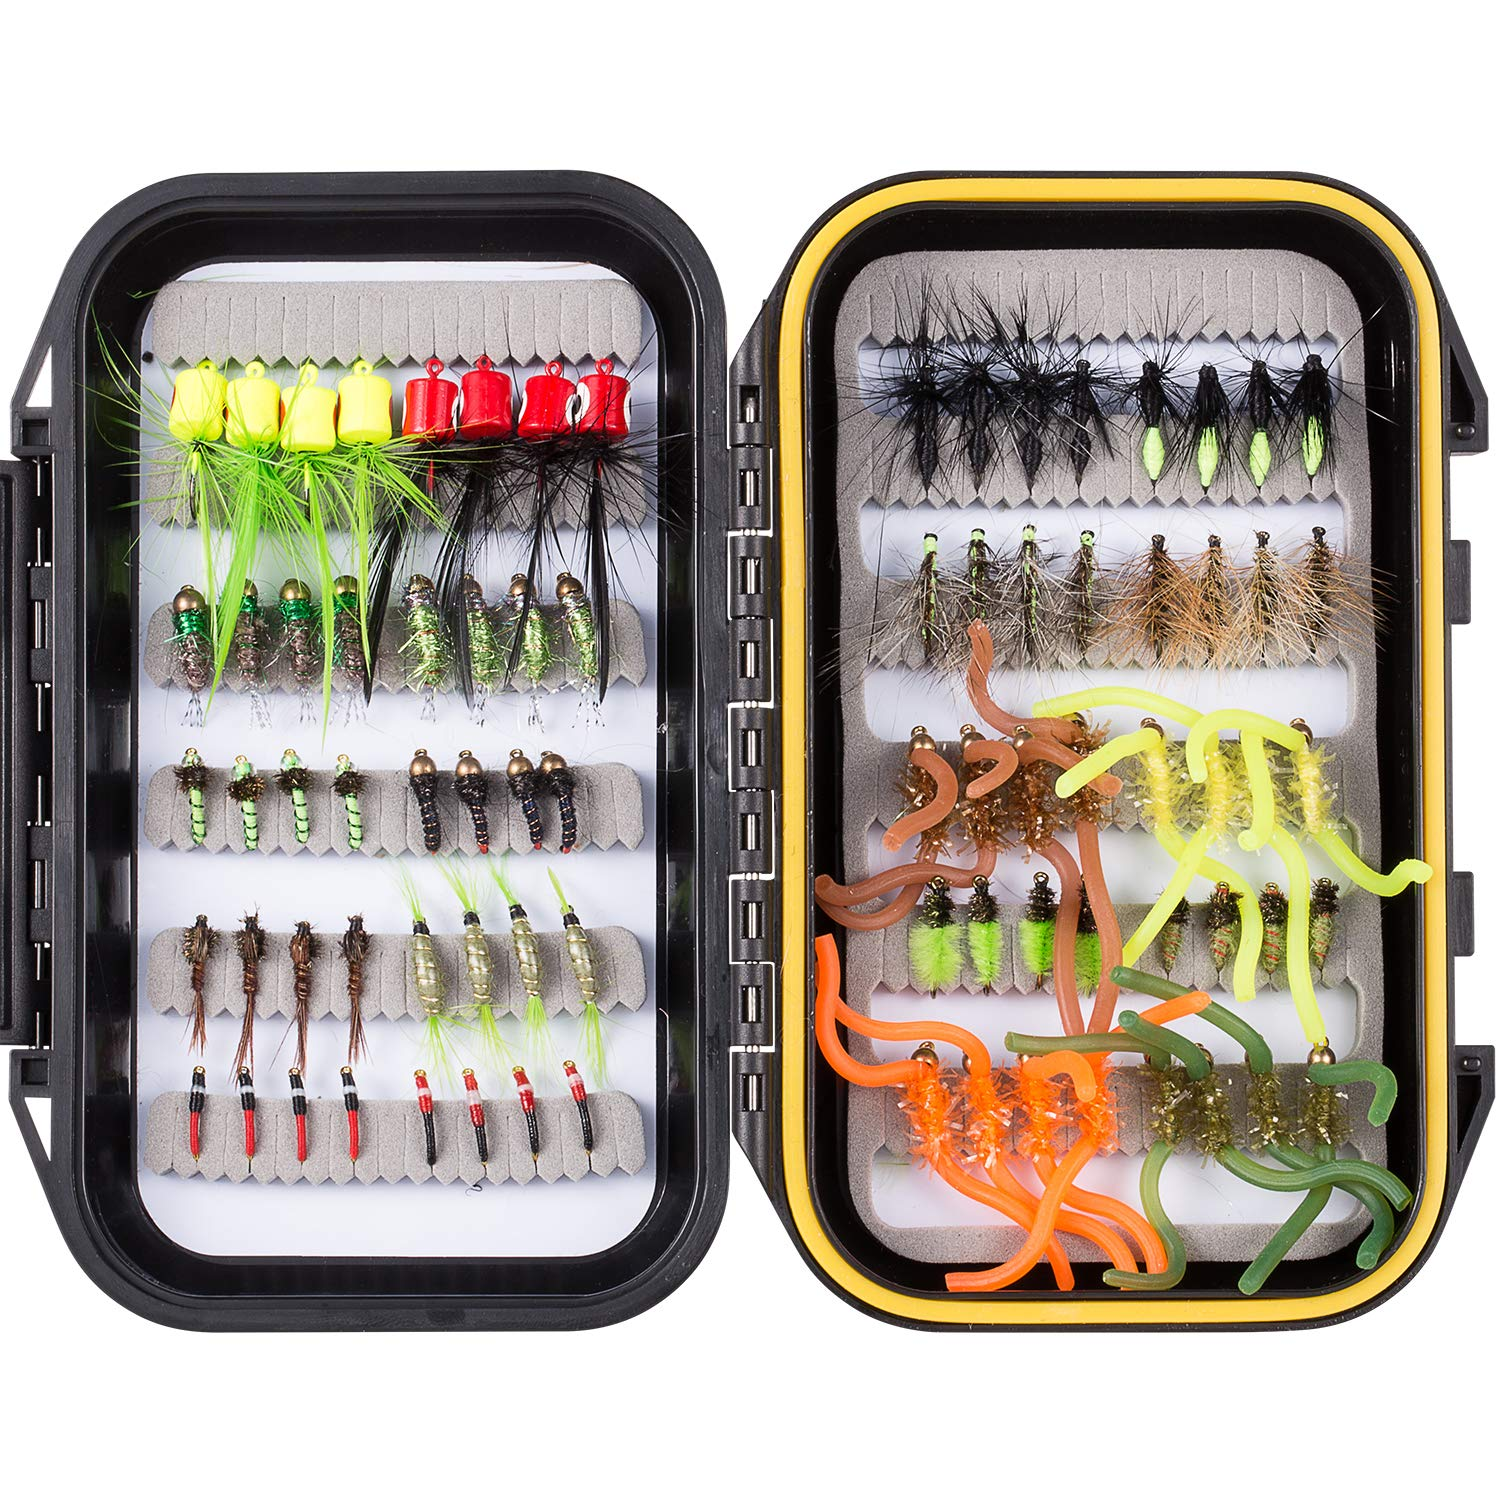 Bassdash Fly Fishing Flies Kit Fly Assortment with Fly Box, 36/64/72/80/96pcs with Dry/Wet Flies, Nymphs, Streamers, etc. (80 pcs Assorted Flies kit with Waterproof Fly Box) by Bassdash